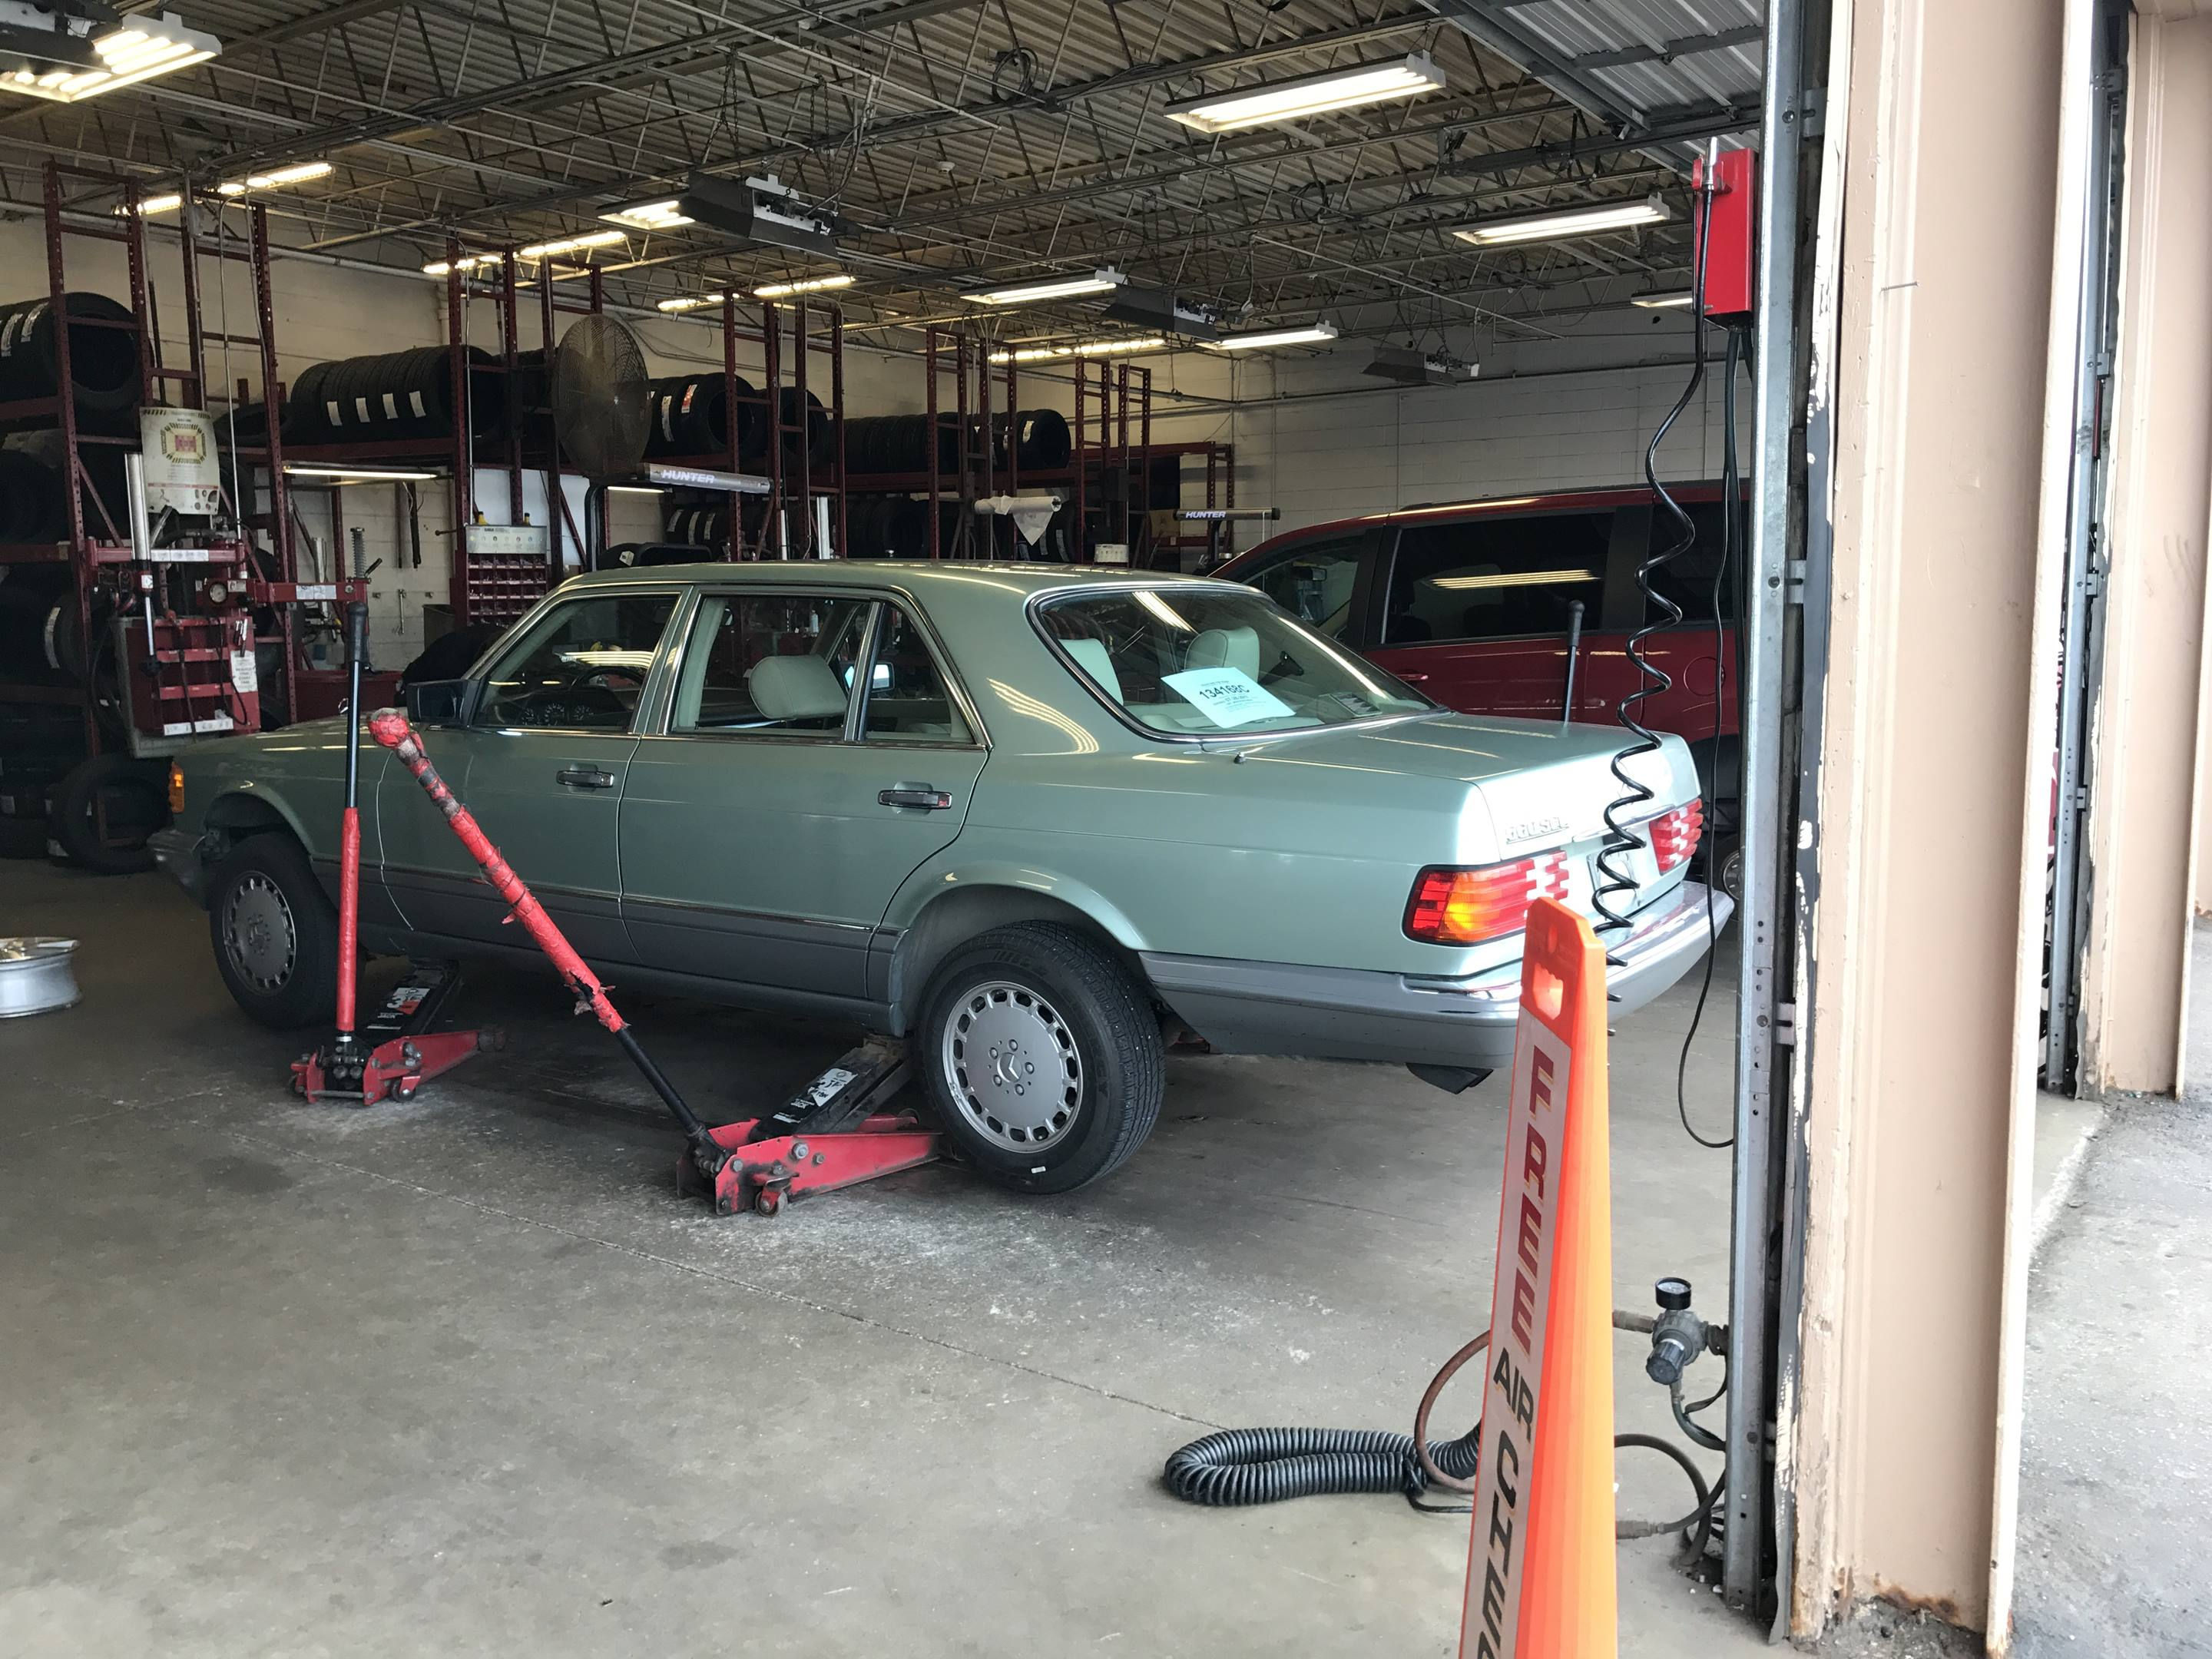 1987 Mercedes-Benz 560 SEL inspection